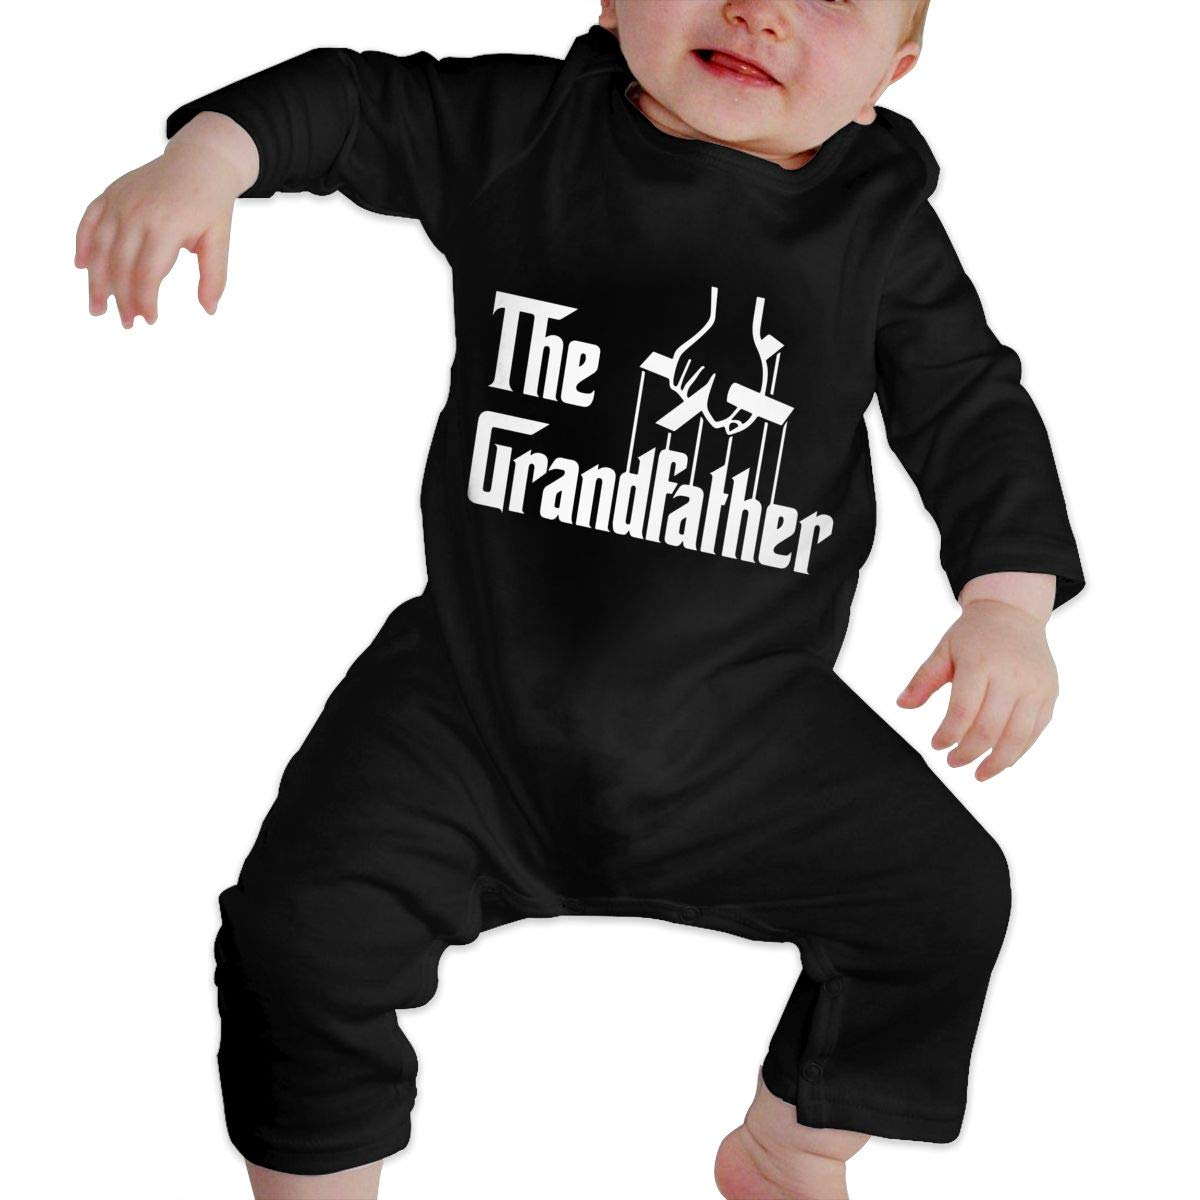 Fasenix The Grandfather Romper Jumpsuit Long Sleeve Bodysuit Overalls Outfits Clothes for Newborn Baby Boy Girl